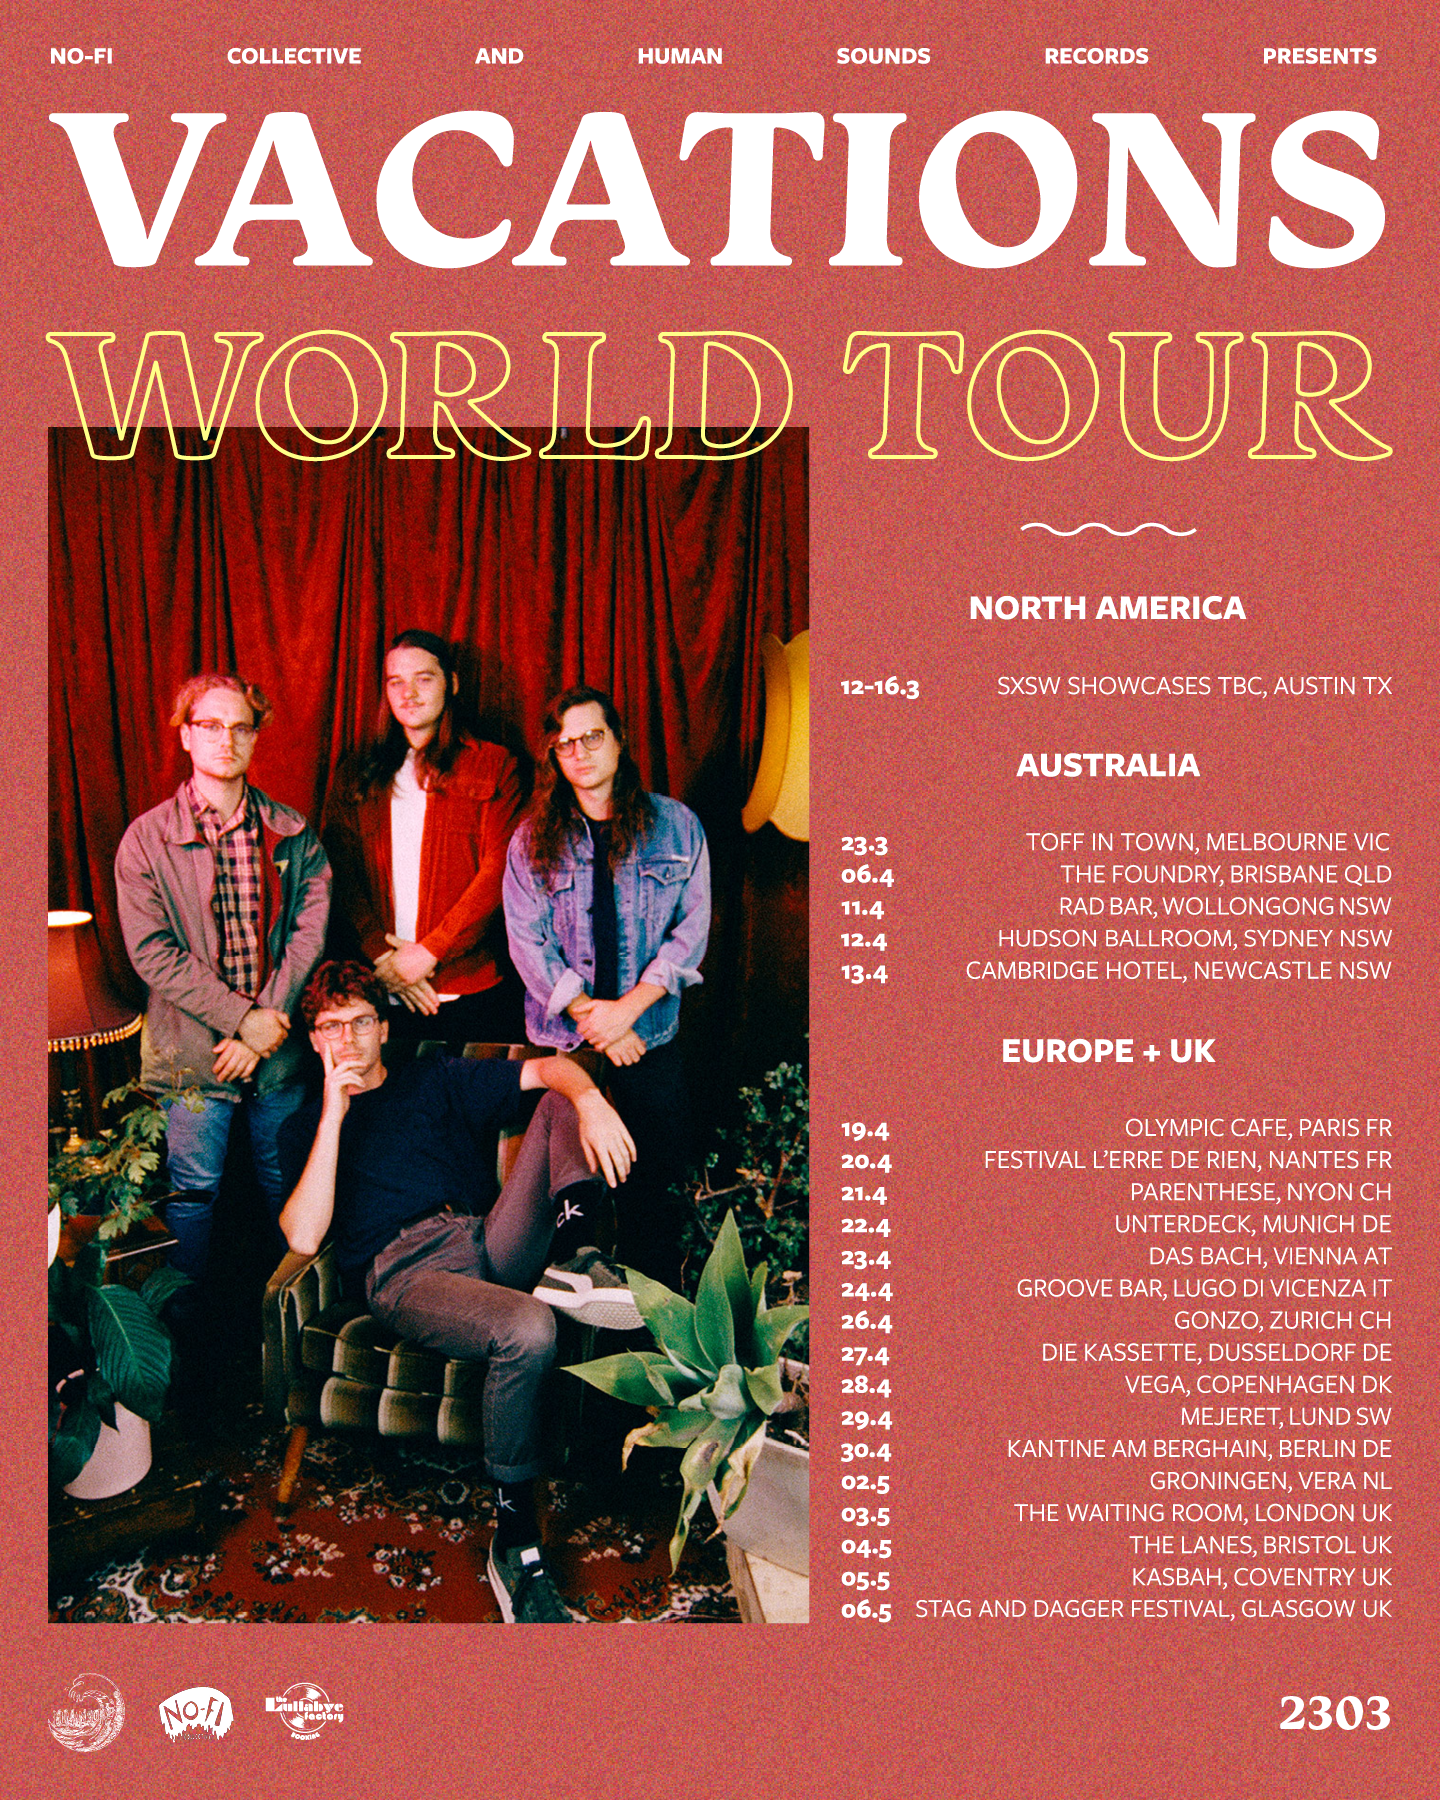 VACATIONS WORLD TOUR.png